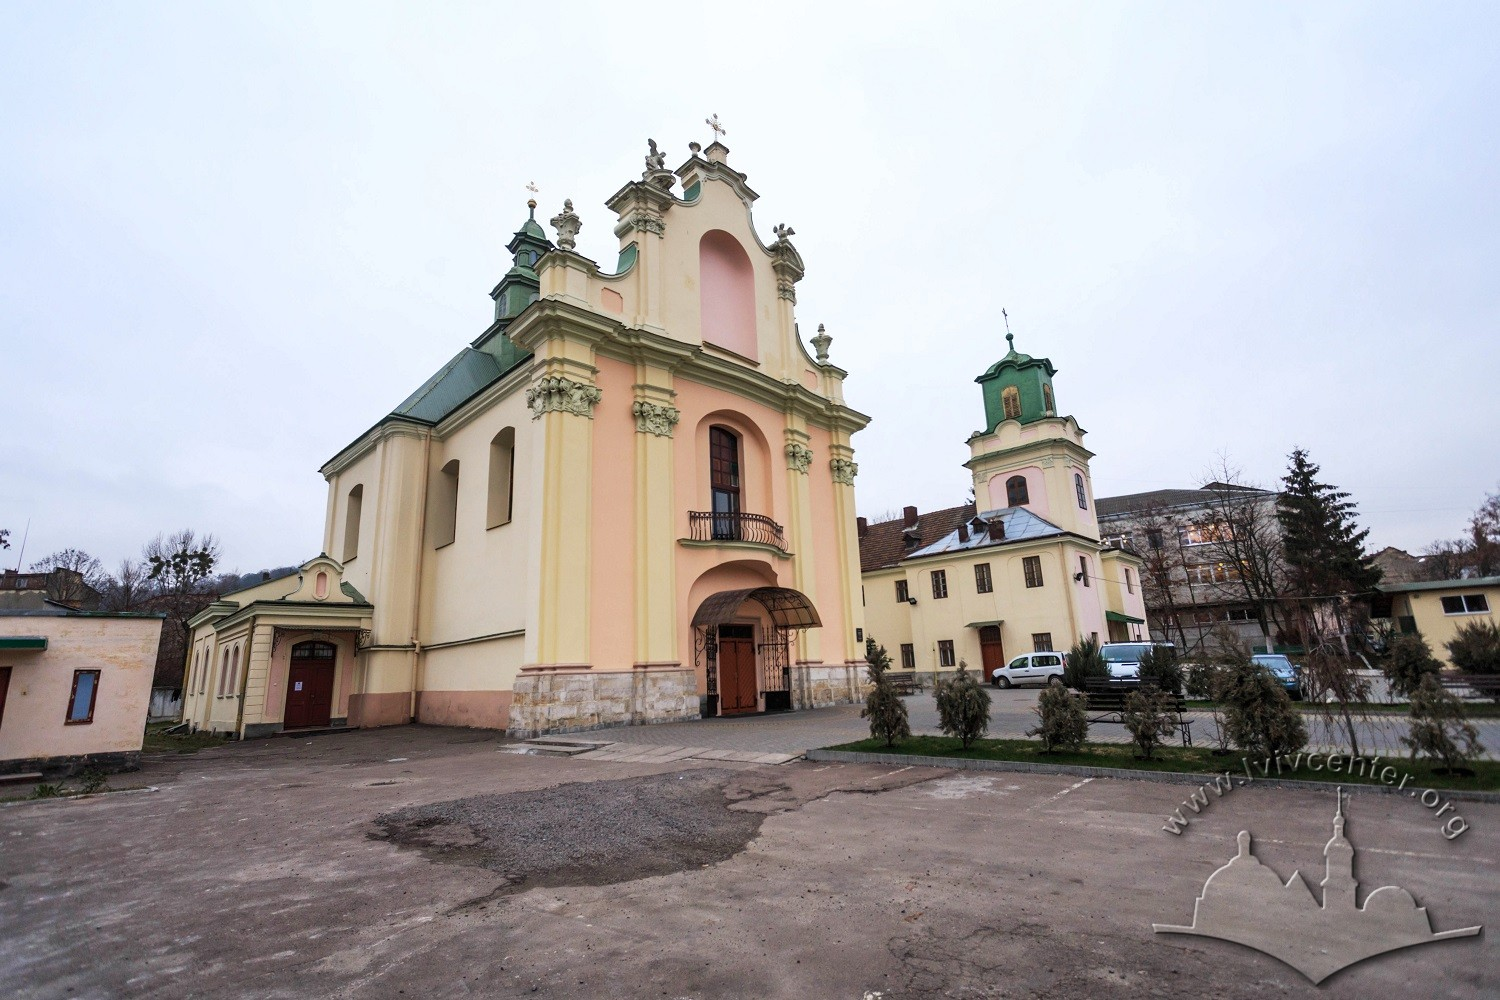 Vul. Zhovkivska, 8. Former church and monastery as seen from northern side/Photo courtesy of Nazarii Parkhomyk, 2015